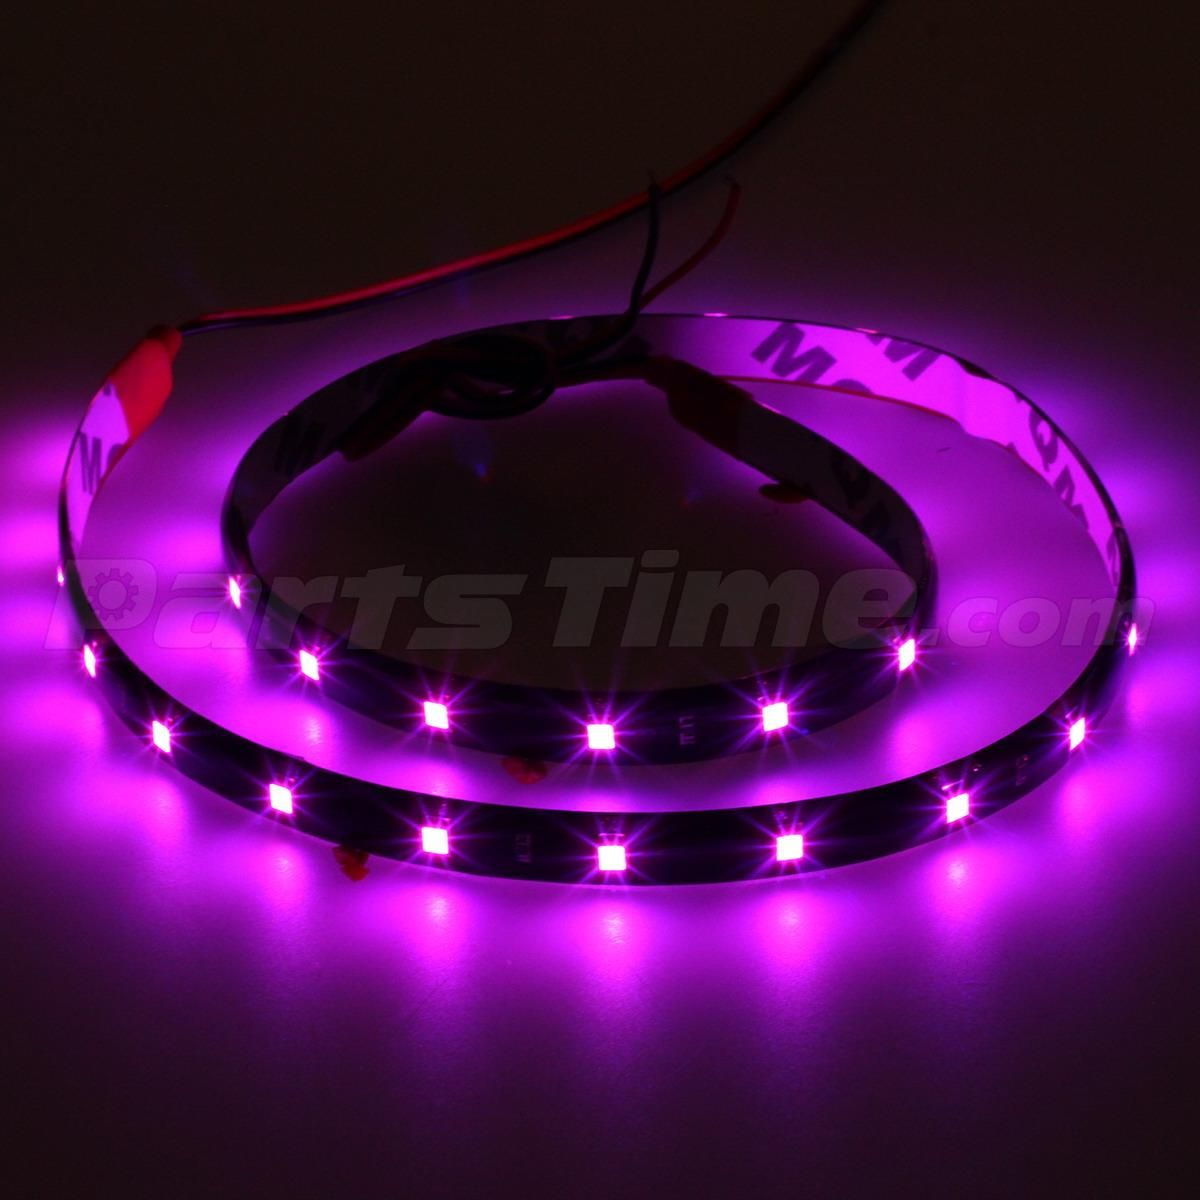 4x car vehicle interior 12v pink purple 3528 smd 30led flexible strip light 60cm ebay. Black Bedroom Furniture Sets. Home Design Ideas